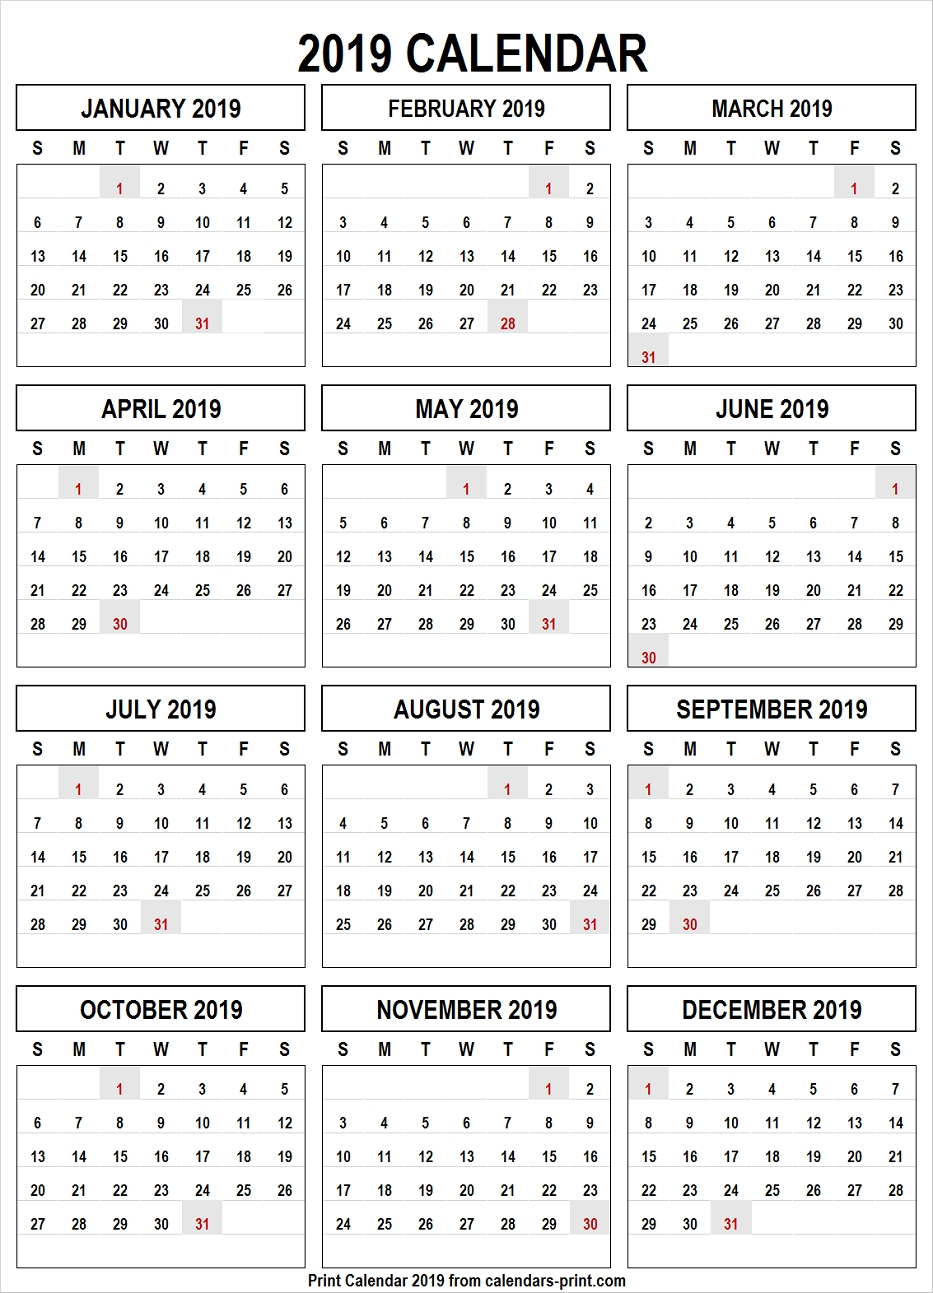 Calendar 2019 Png Free Download Template With Notes   Holidays Calendar 2019 Free Download